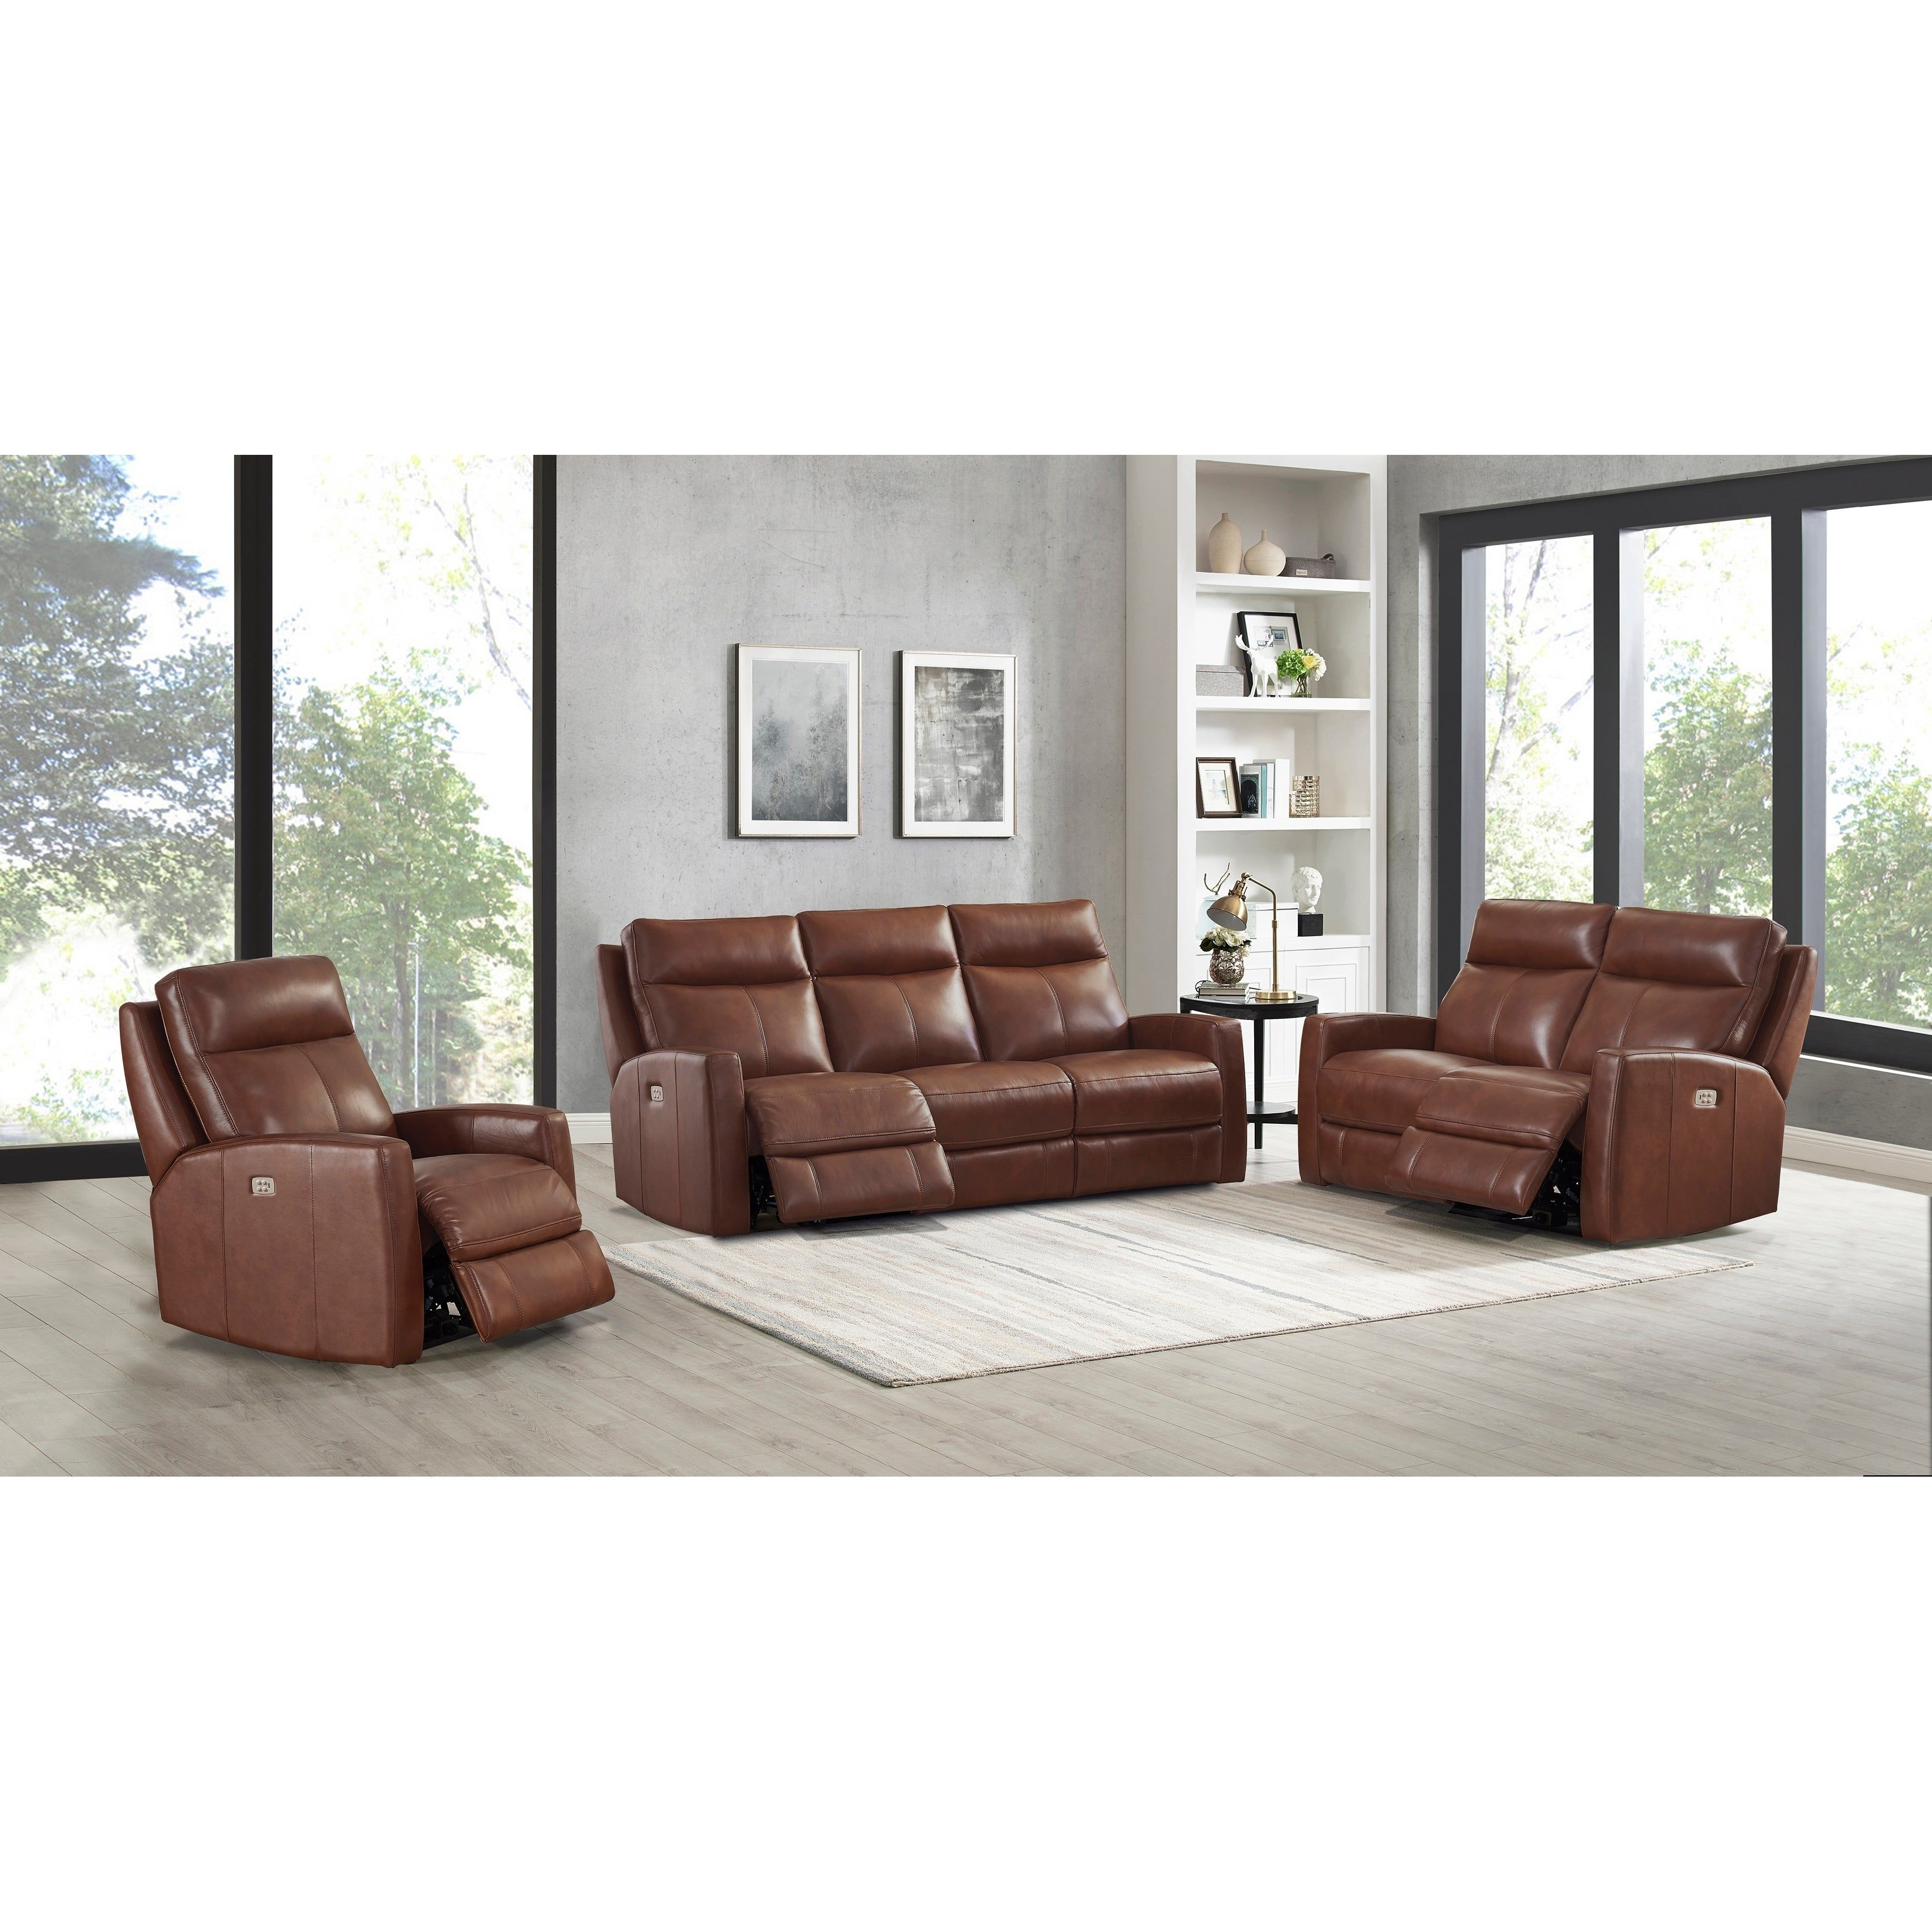 Online Shopping Bedding Furniture Electronics Jewelry Clothing More Power Recliners Living Room Sets Recliner